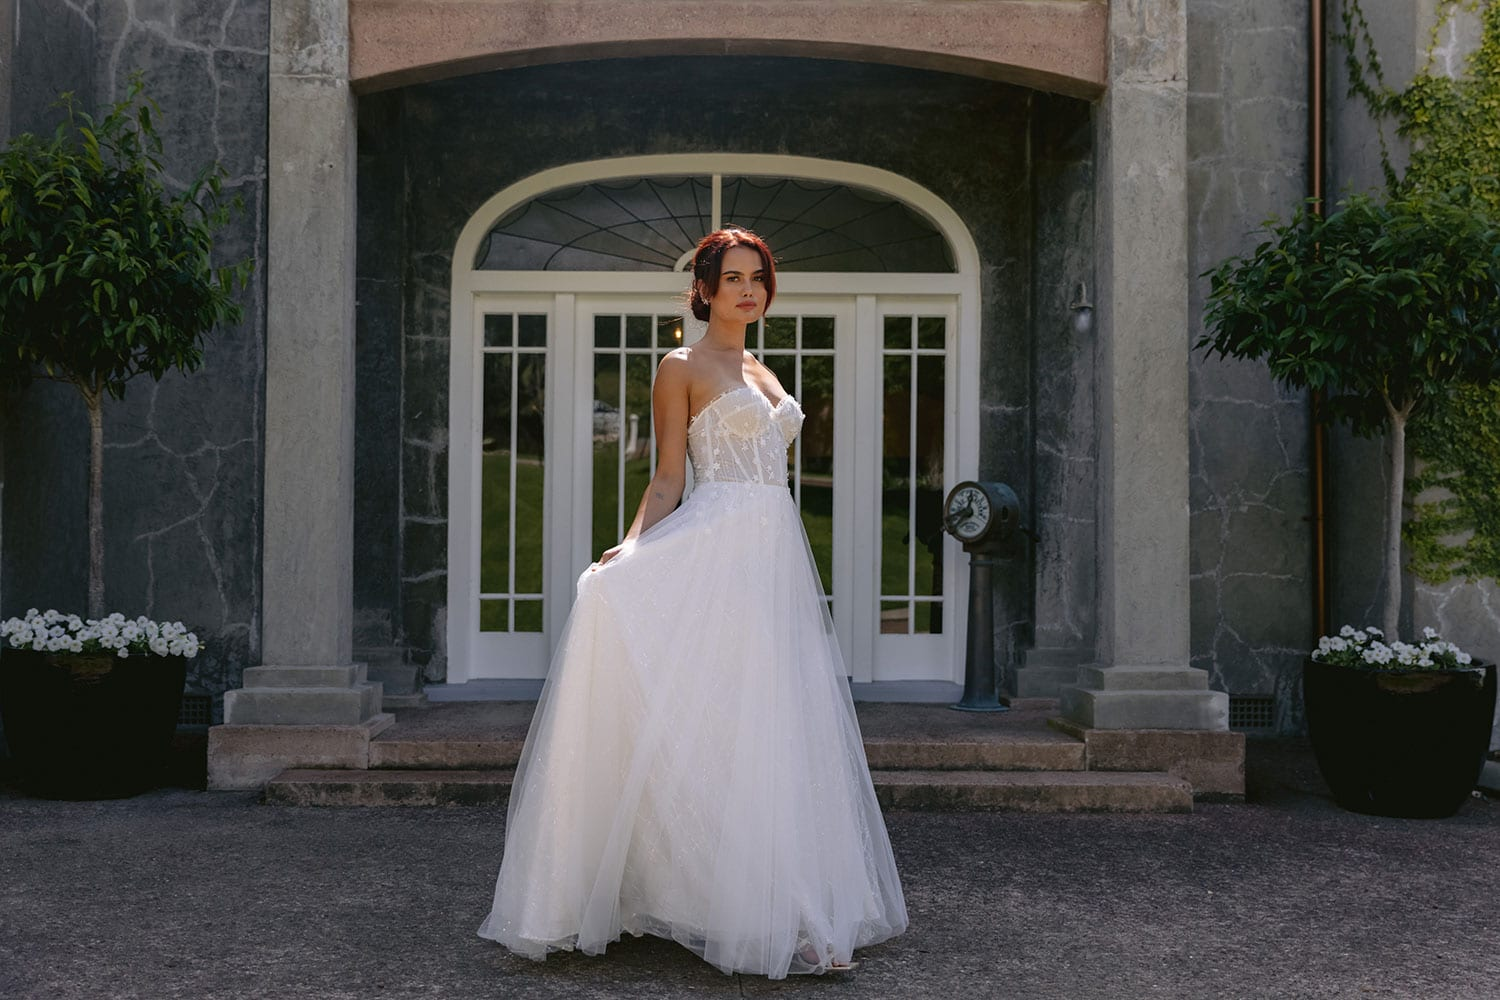 Hikari Wedding gown from Vinka Design - This modern wedding dress has a structured semi-sheer bodice with hand-appliqued lace of stars and flowers. The skirt is made with multiple layers of soft tulle. Model wearing gown holding skirt out in courtyard of old building near Auckland.